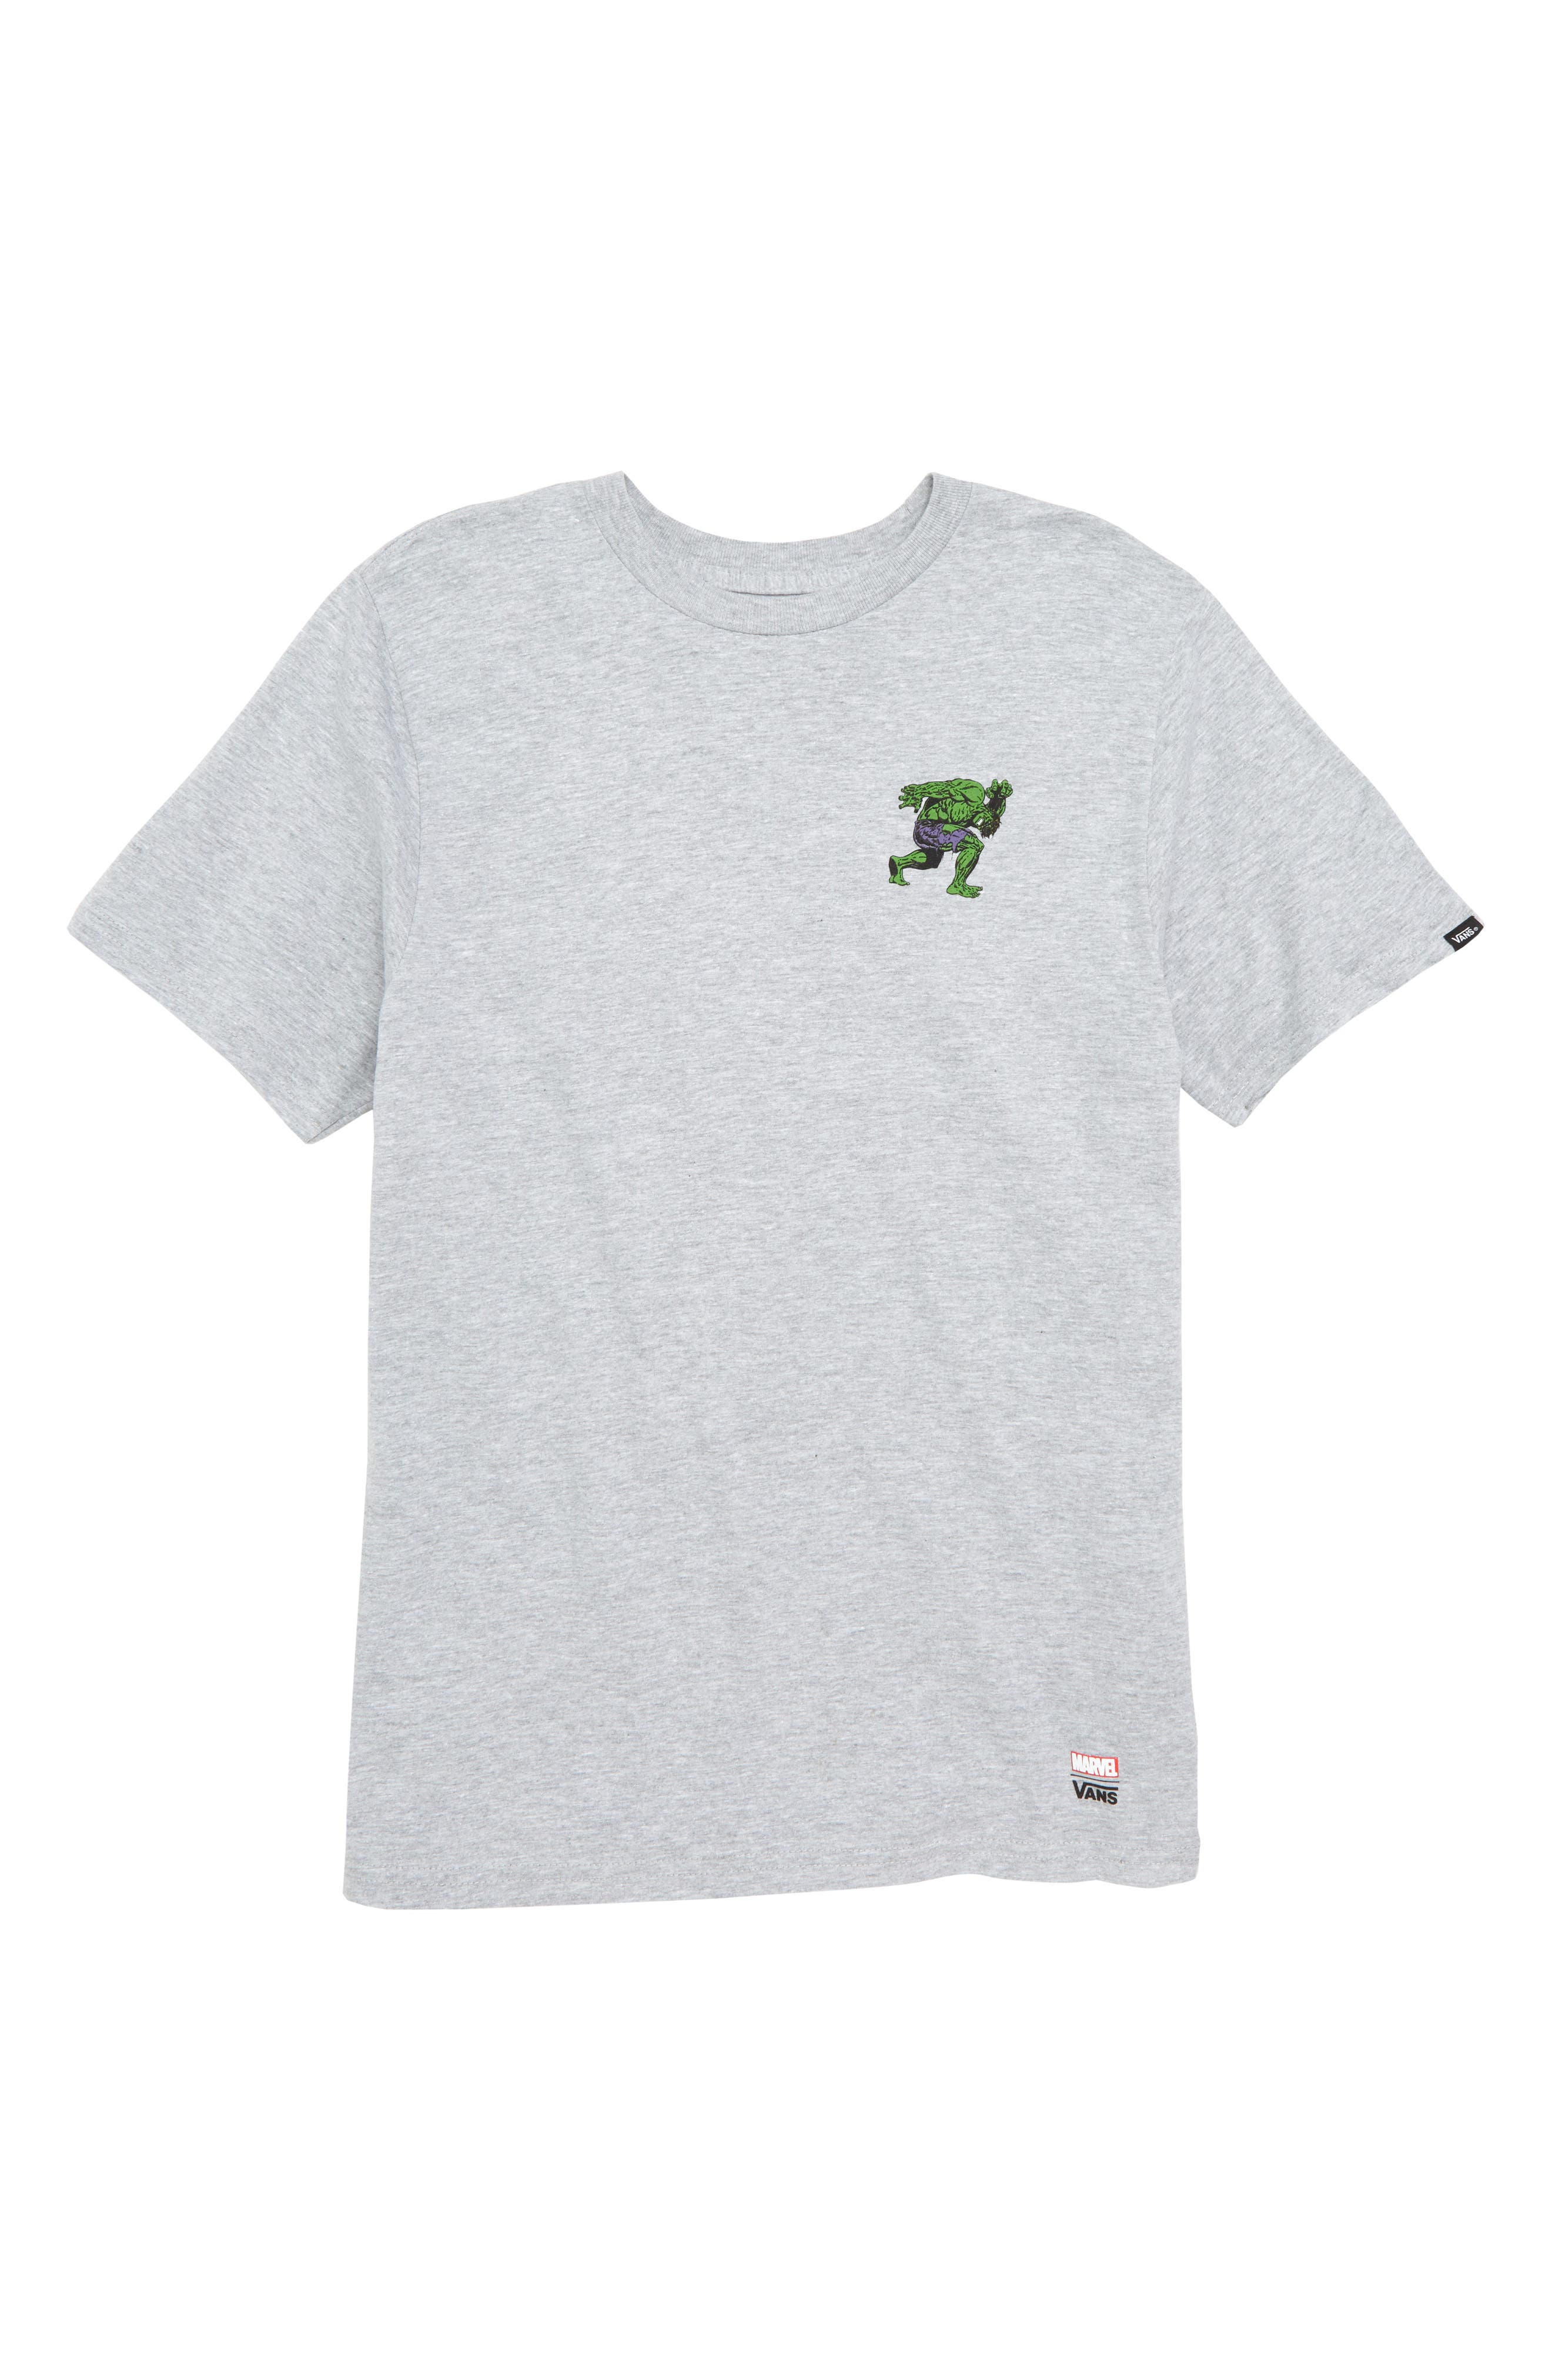 x Marvel<sup>®</sup> Avengers Hulk Graphic T-Shirt,                         Main,                         color, Athletic Heather